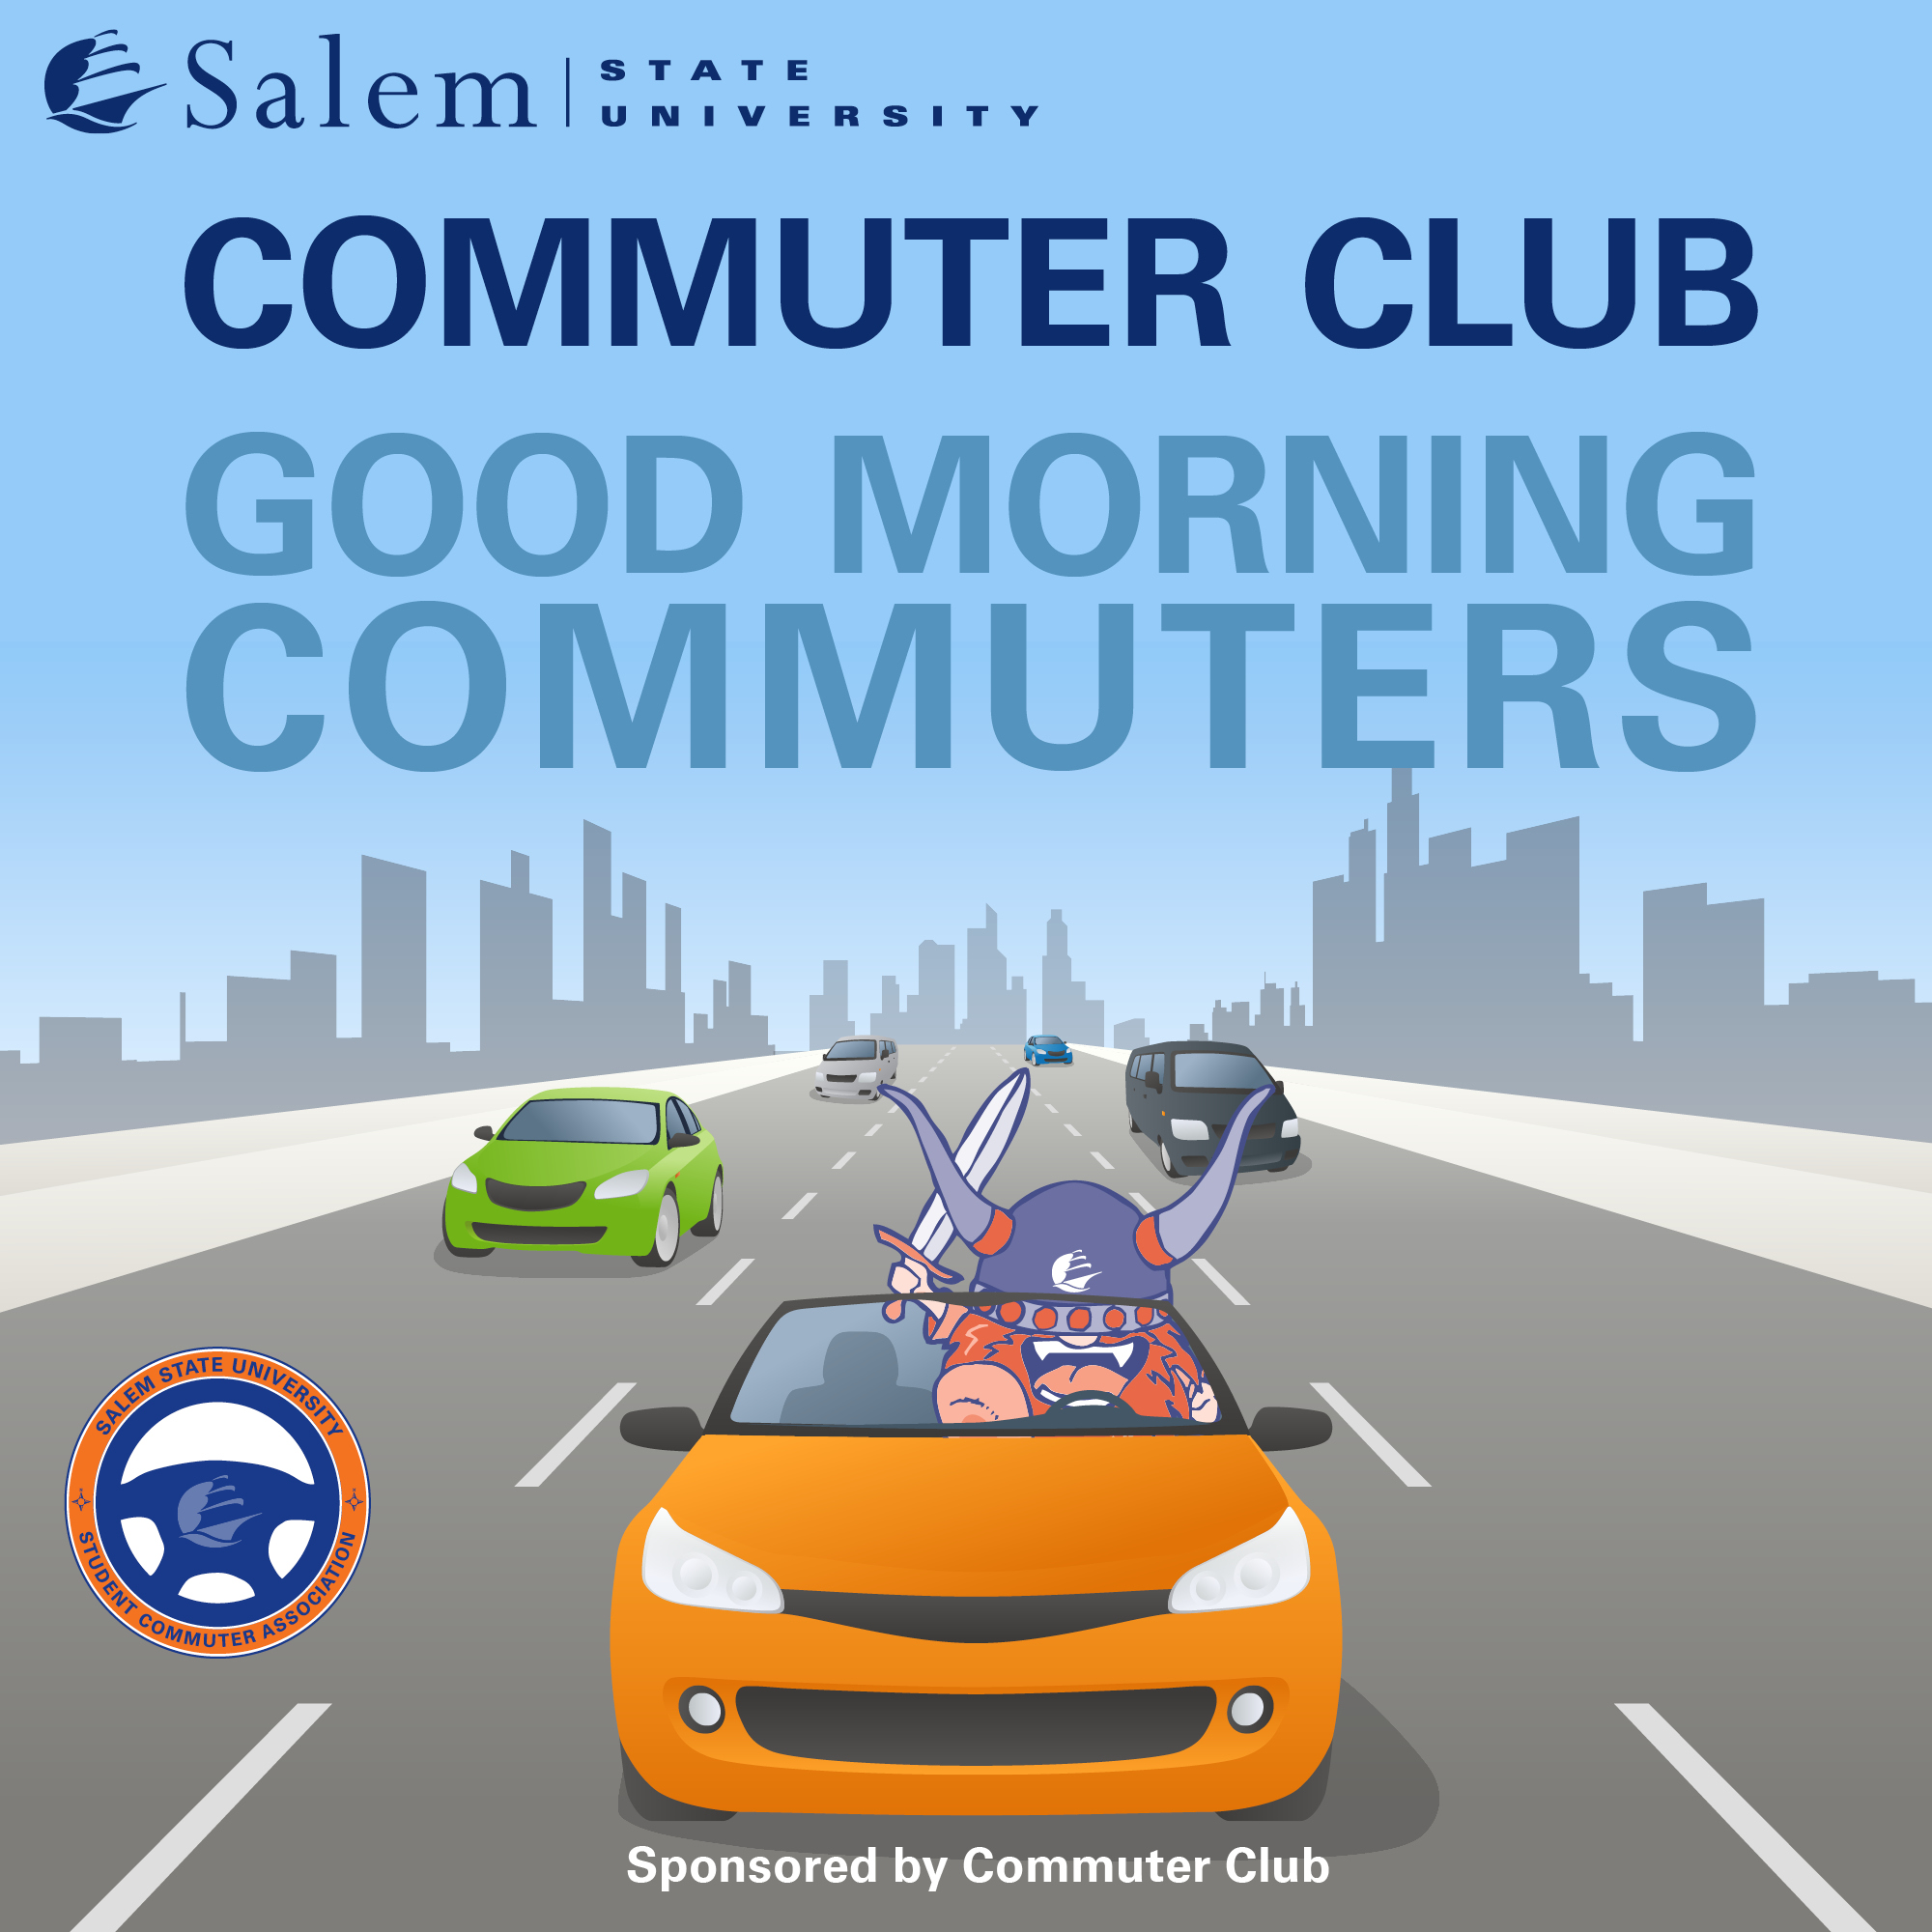 Commuter Club graphic